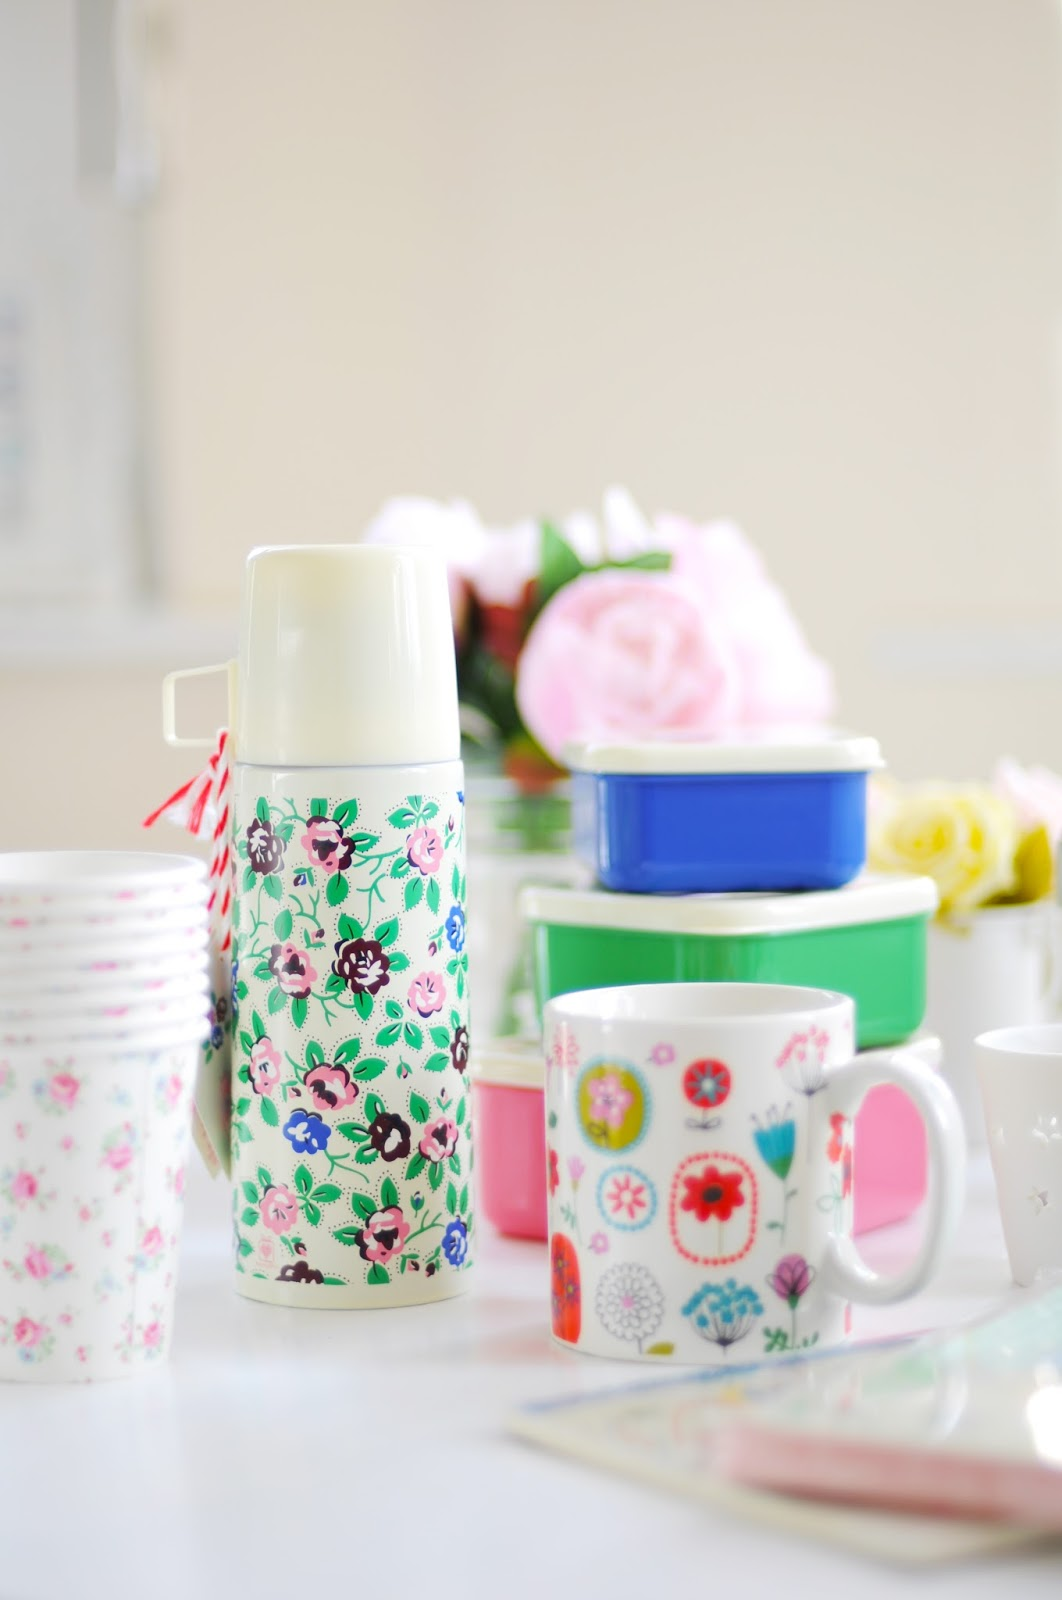 CHRISTMAS GIFT GUIDE: Cute Stocking Fillers - Temporary:Secretary Blog